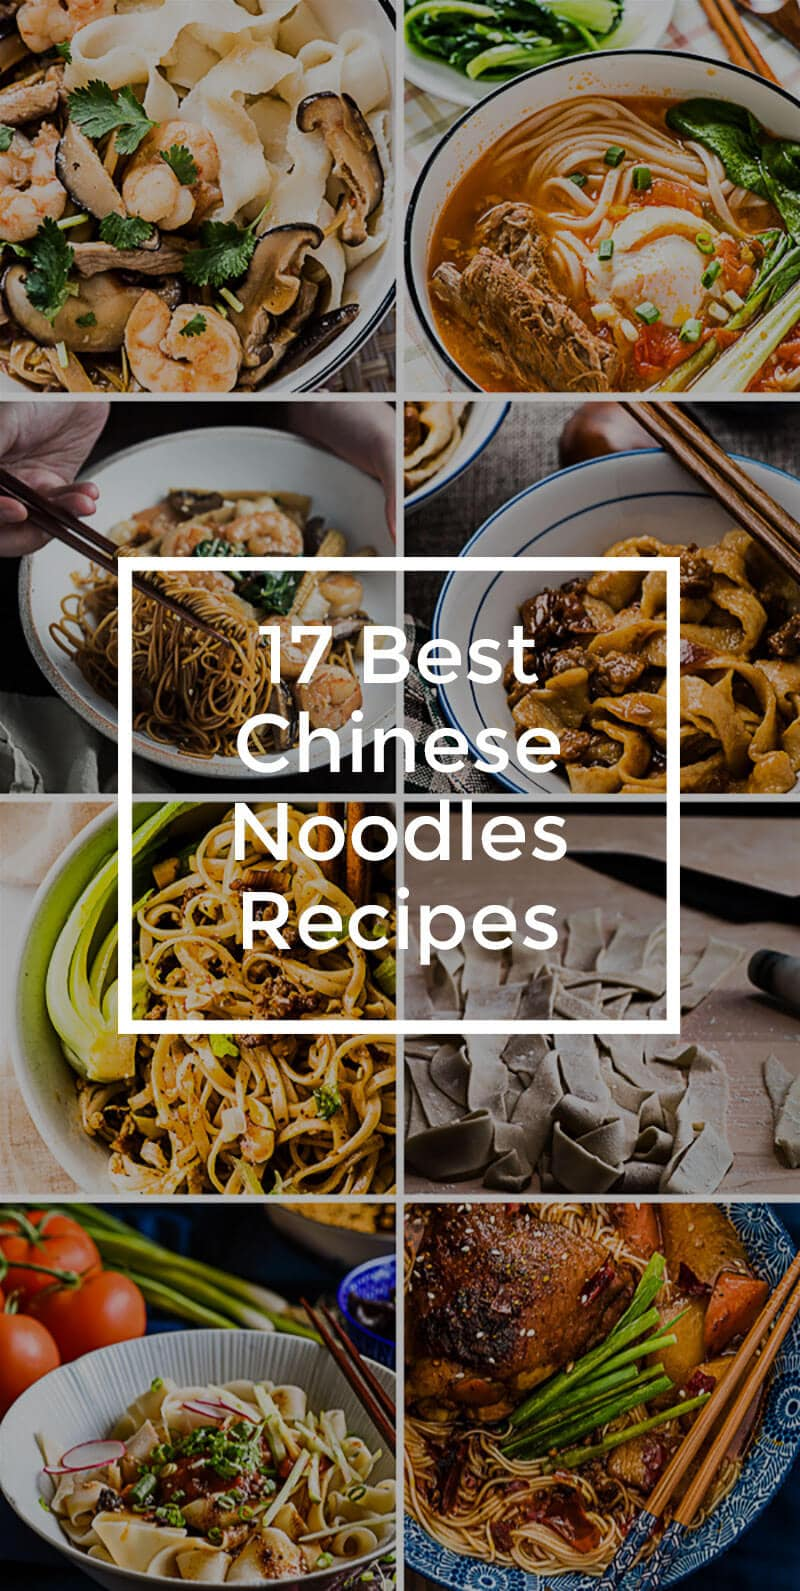 17 Best Images About Cars 2 On Pinterest: 17 Best Chinese Noodles Recipes